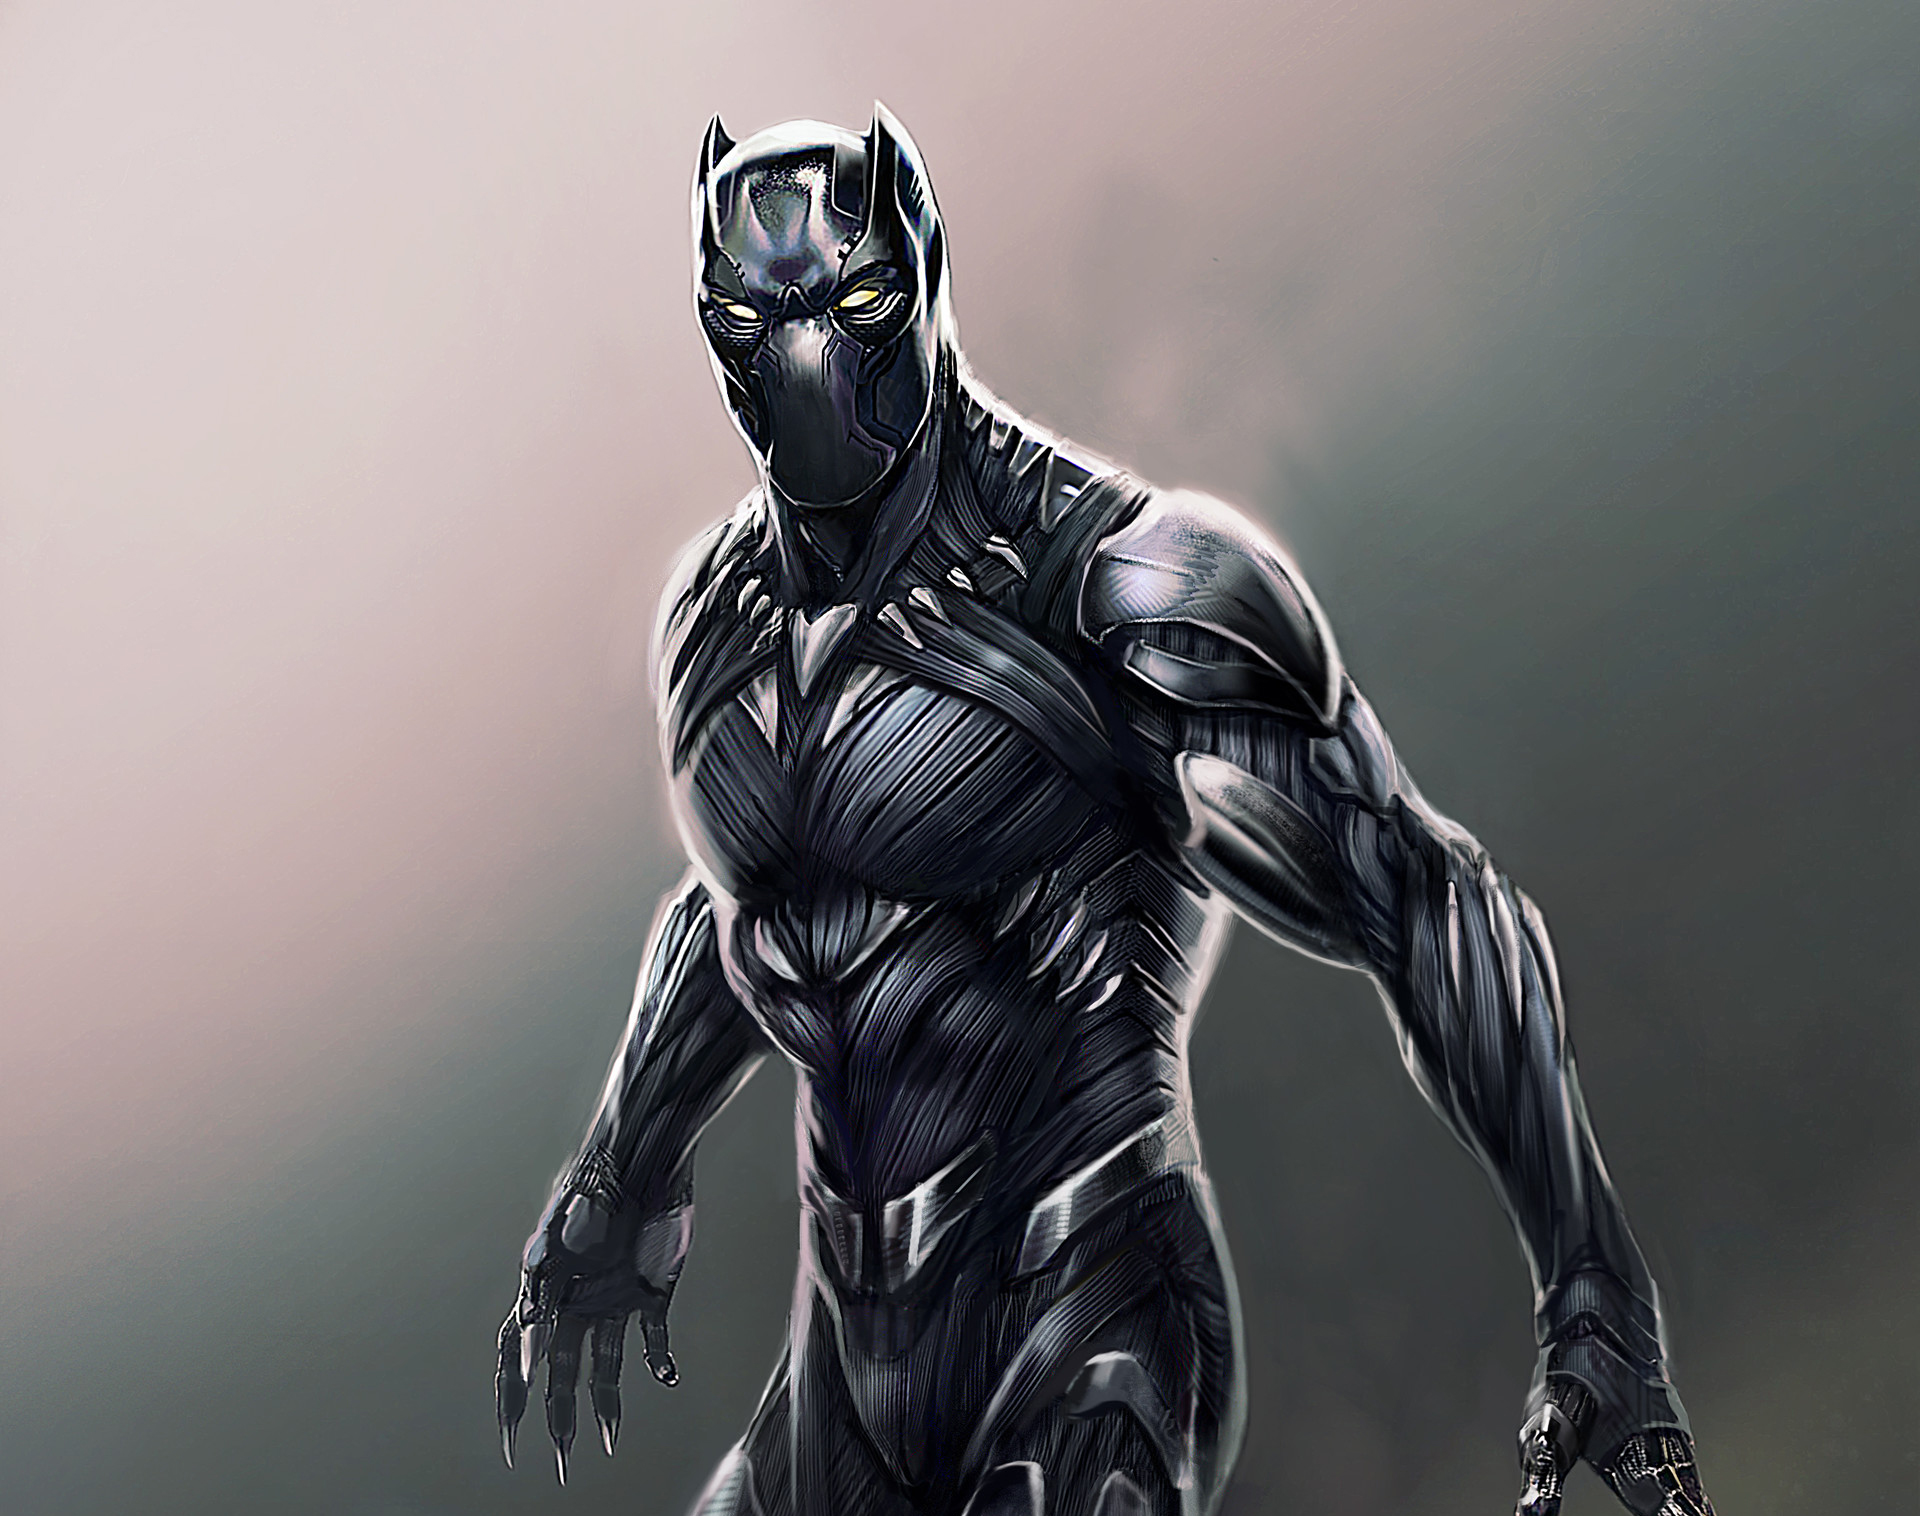 1280x800 Black Panther Digital Artwork 720p Hd 4k Wallpapers